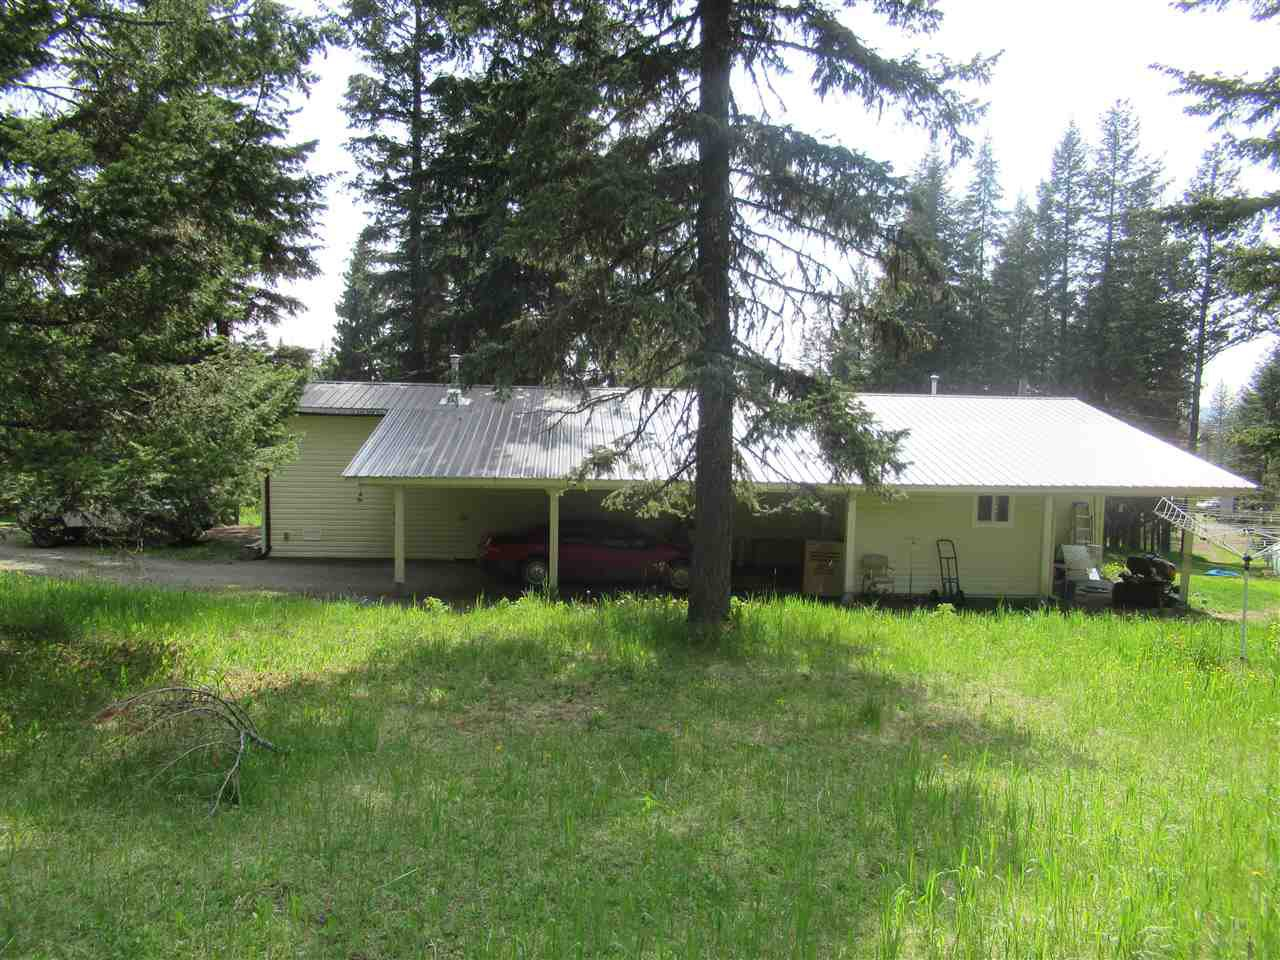 Photo 15: Photos: 1224 DESAUTEL Road in Williams Lake: Williams Lake - Rural East Manufactured Home for sale (Williams Lake (Zone 27))  : MLS®# R2376873